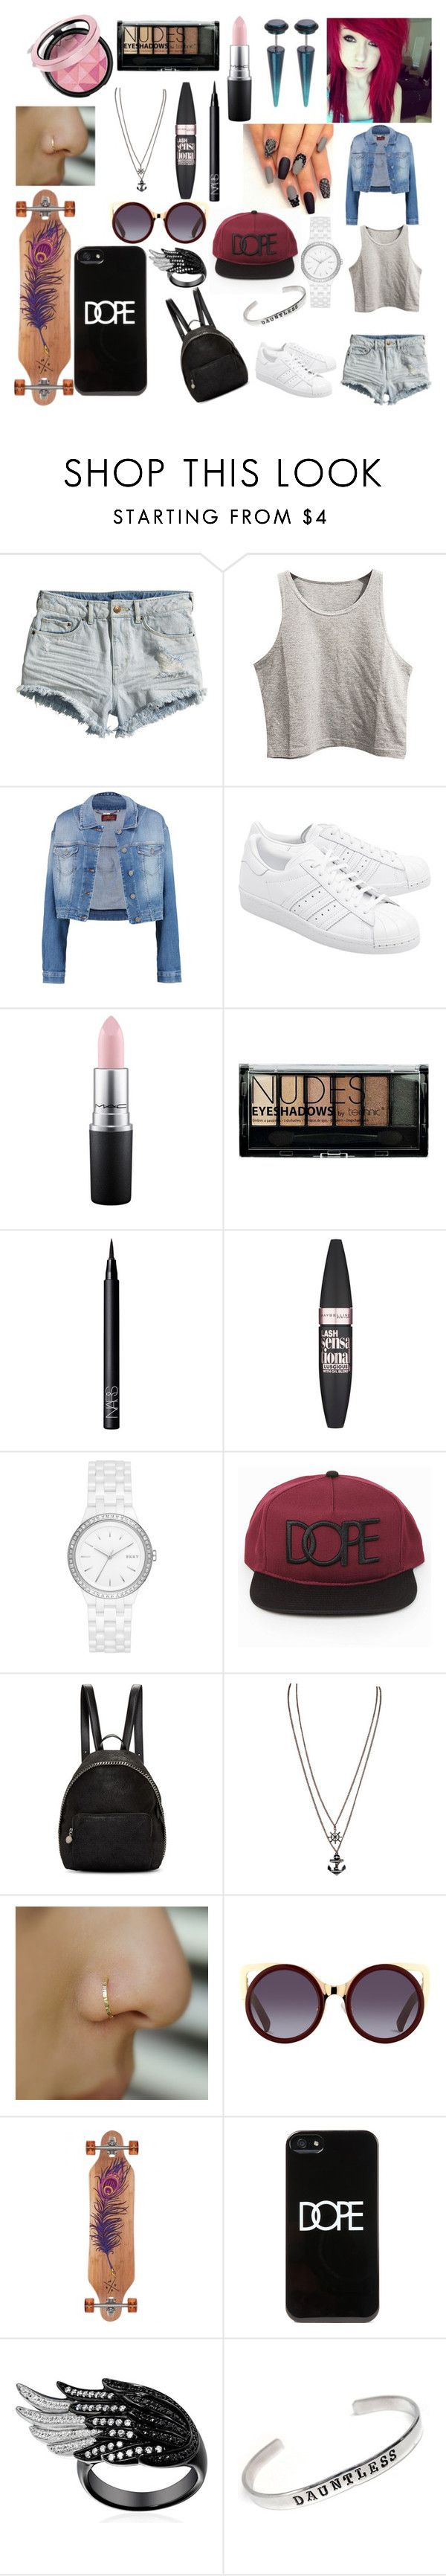 """""""#51"""" by spider-1505 on Polyvore featuring Mode, H&M, 7 For All Mankind, adidas Originals, MAC Cosmetics, Boohoo, NARS Cosmetics, Maybelline, DKNY und STELLA McCARTNEY"""